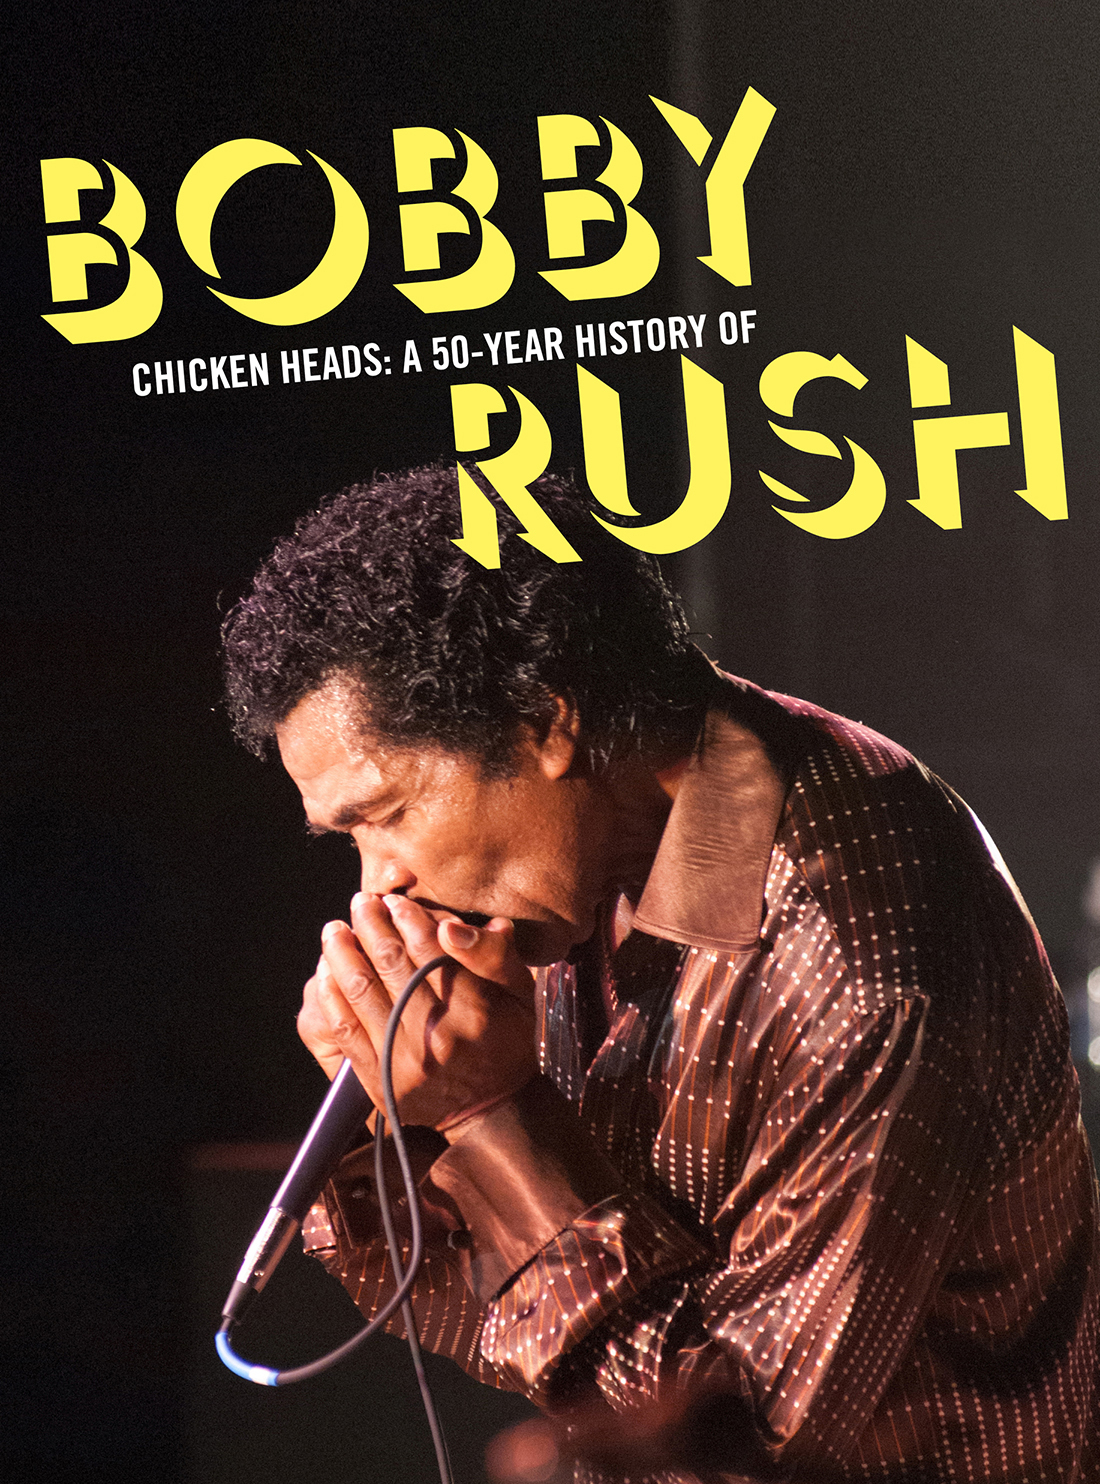 Bobby Rush -Chicken Heads: A 50-Year History Of Bobby Rush  Release Date: November 27, 2015 Label: Omnivore Recordings  SERVICE: Restoration,Mastering NUMBER OF DISCS: 4 GENRE: R&B, Funk, Soul FORMAT: CD   TRAILER